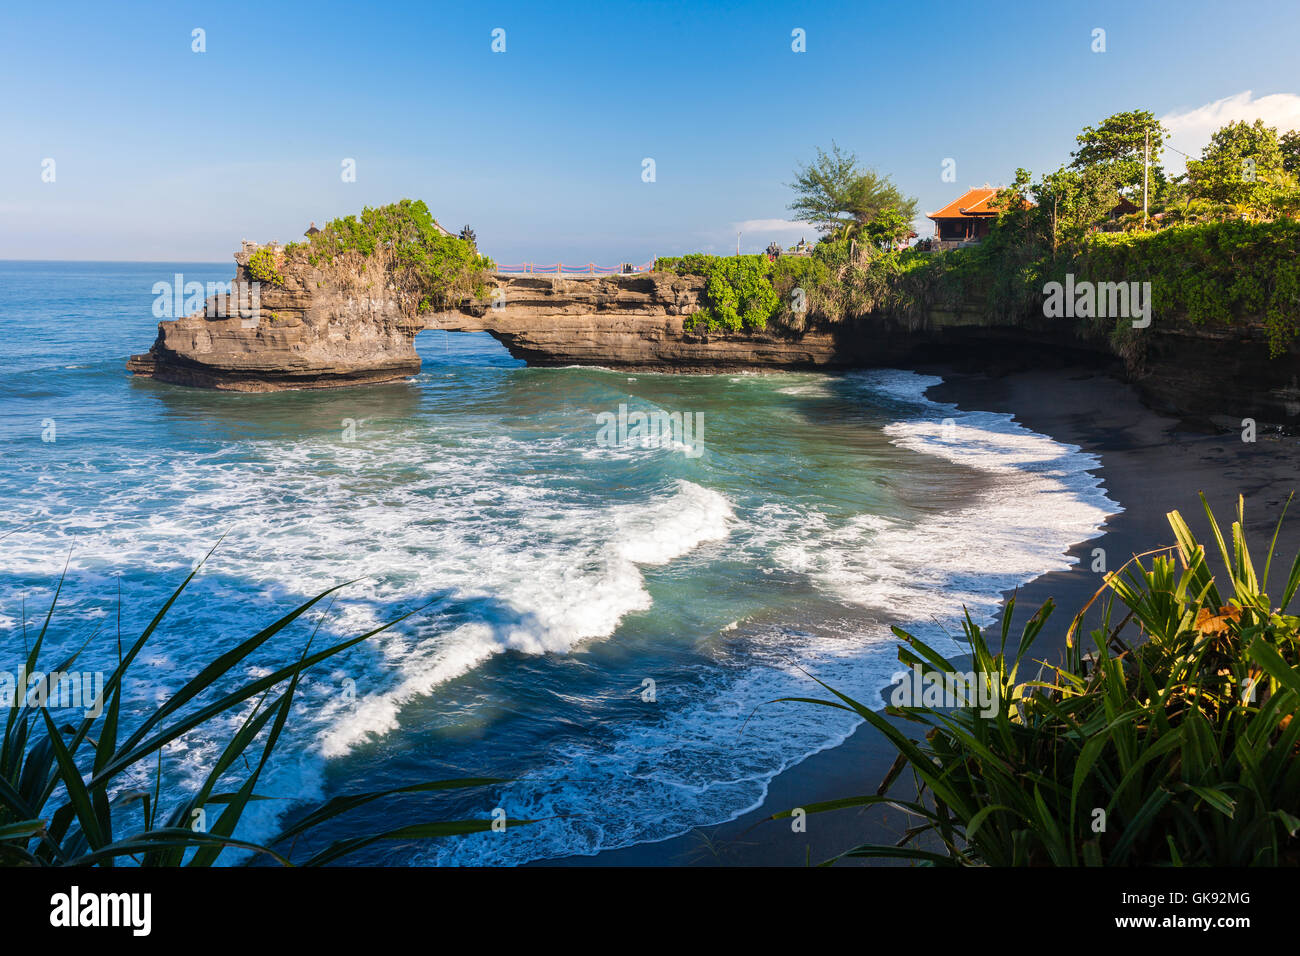 Pura Batu Bolong temple on the beatiful rock in the morning light, Tanah Lot, Bali, Indonesia. - Stock Image